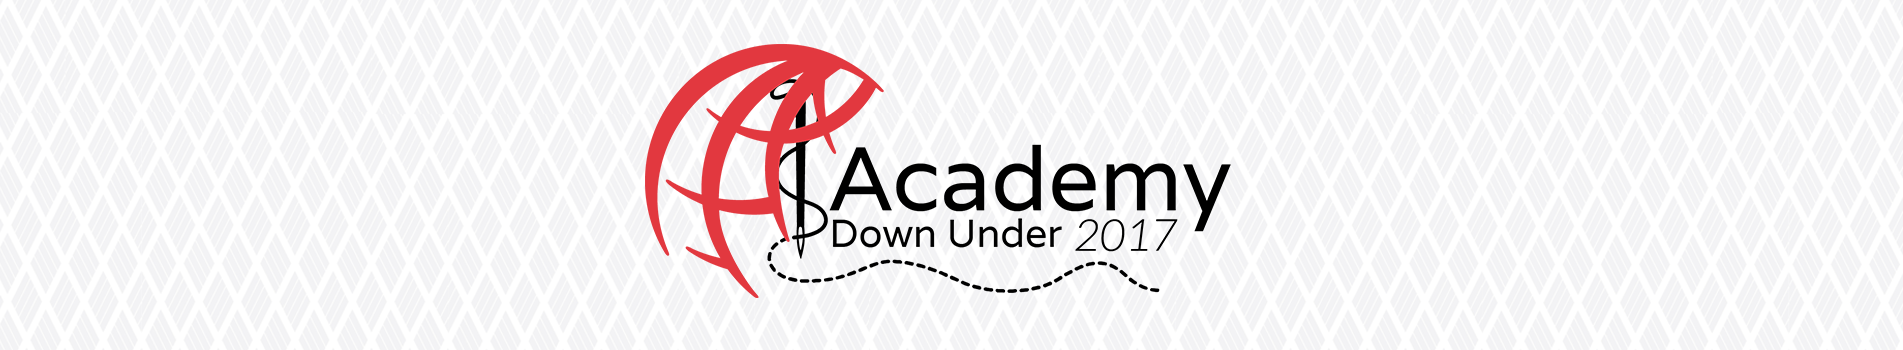 HQ Website Academy Banner